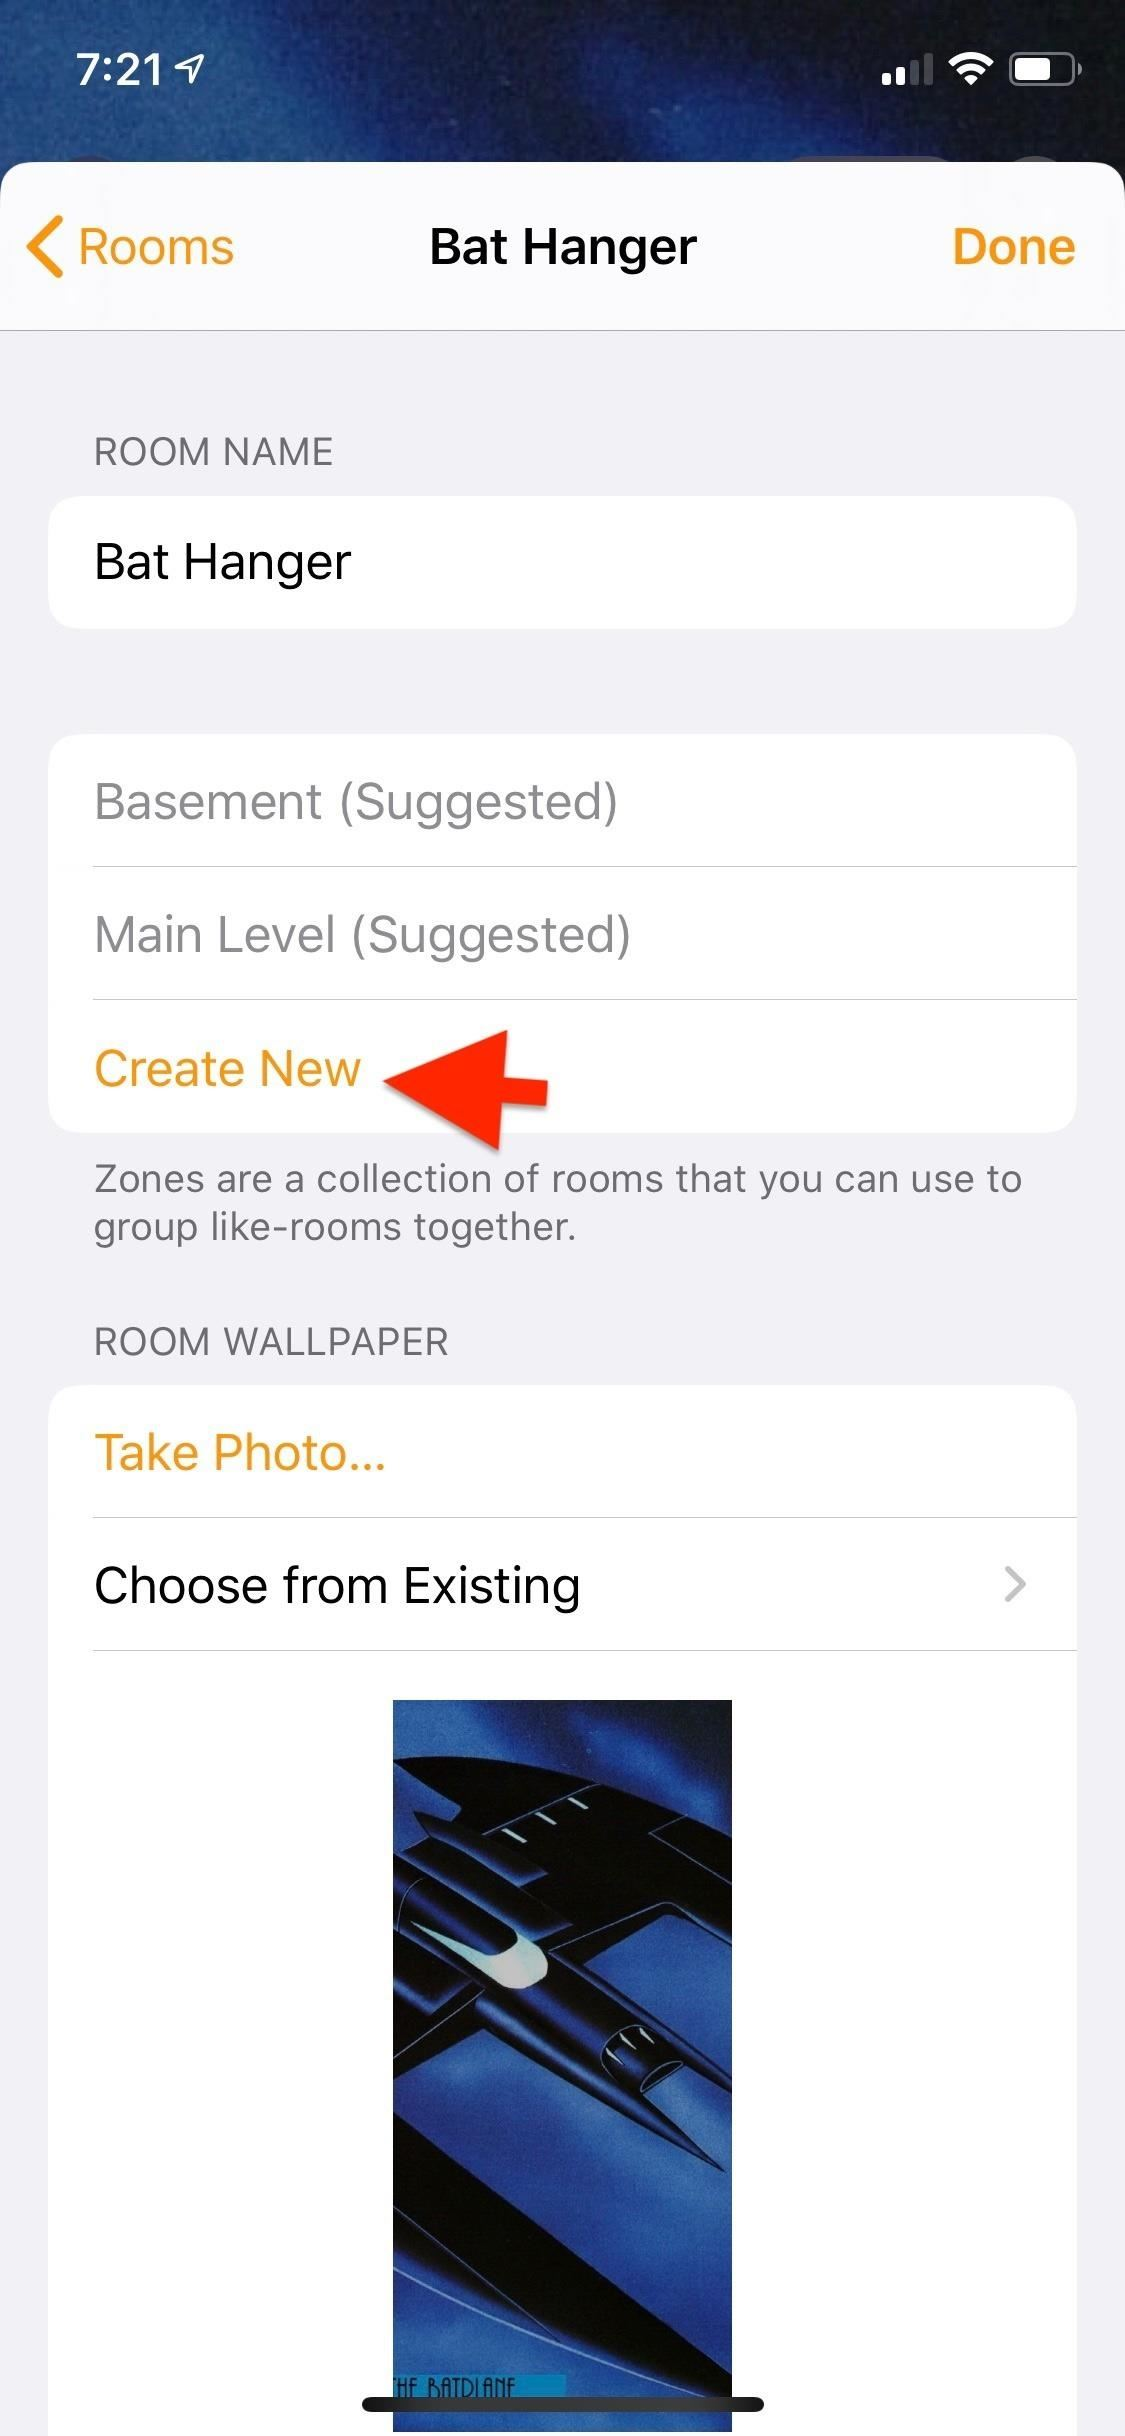 Organize Your Smart Home, Rooms & Zones in Apple's Home App to Streamline Siri Commands